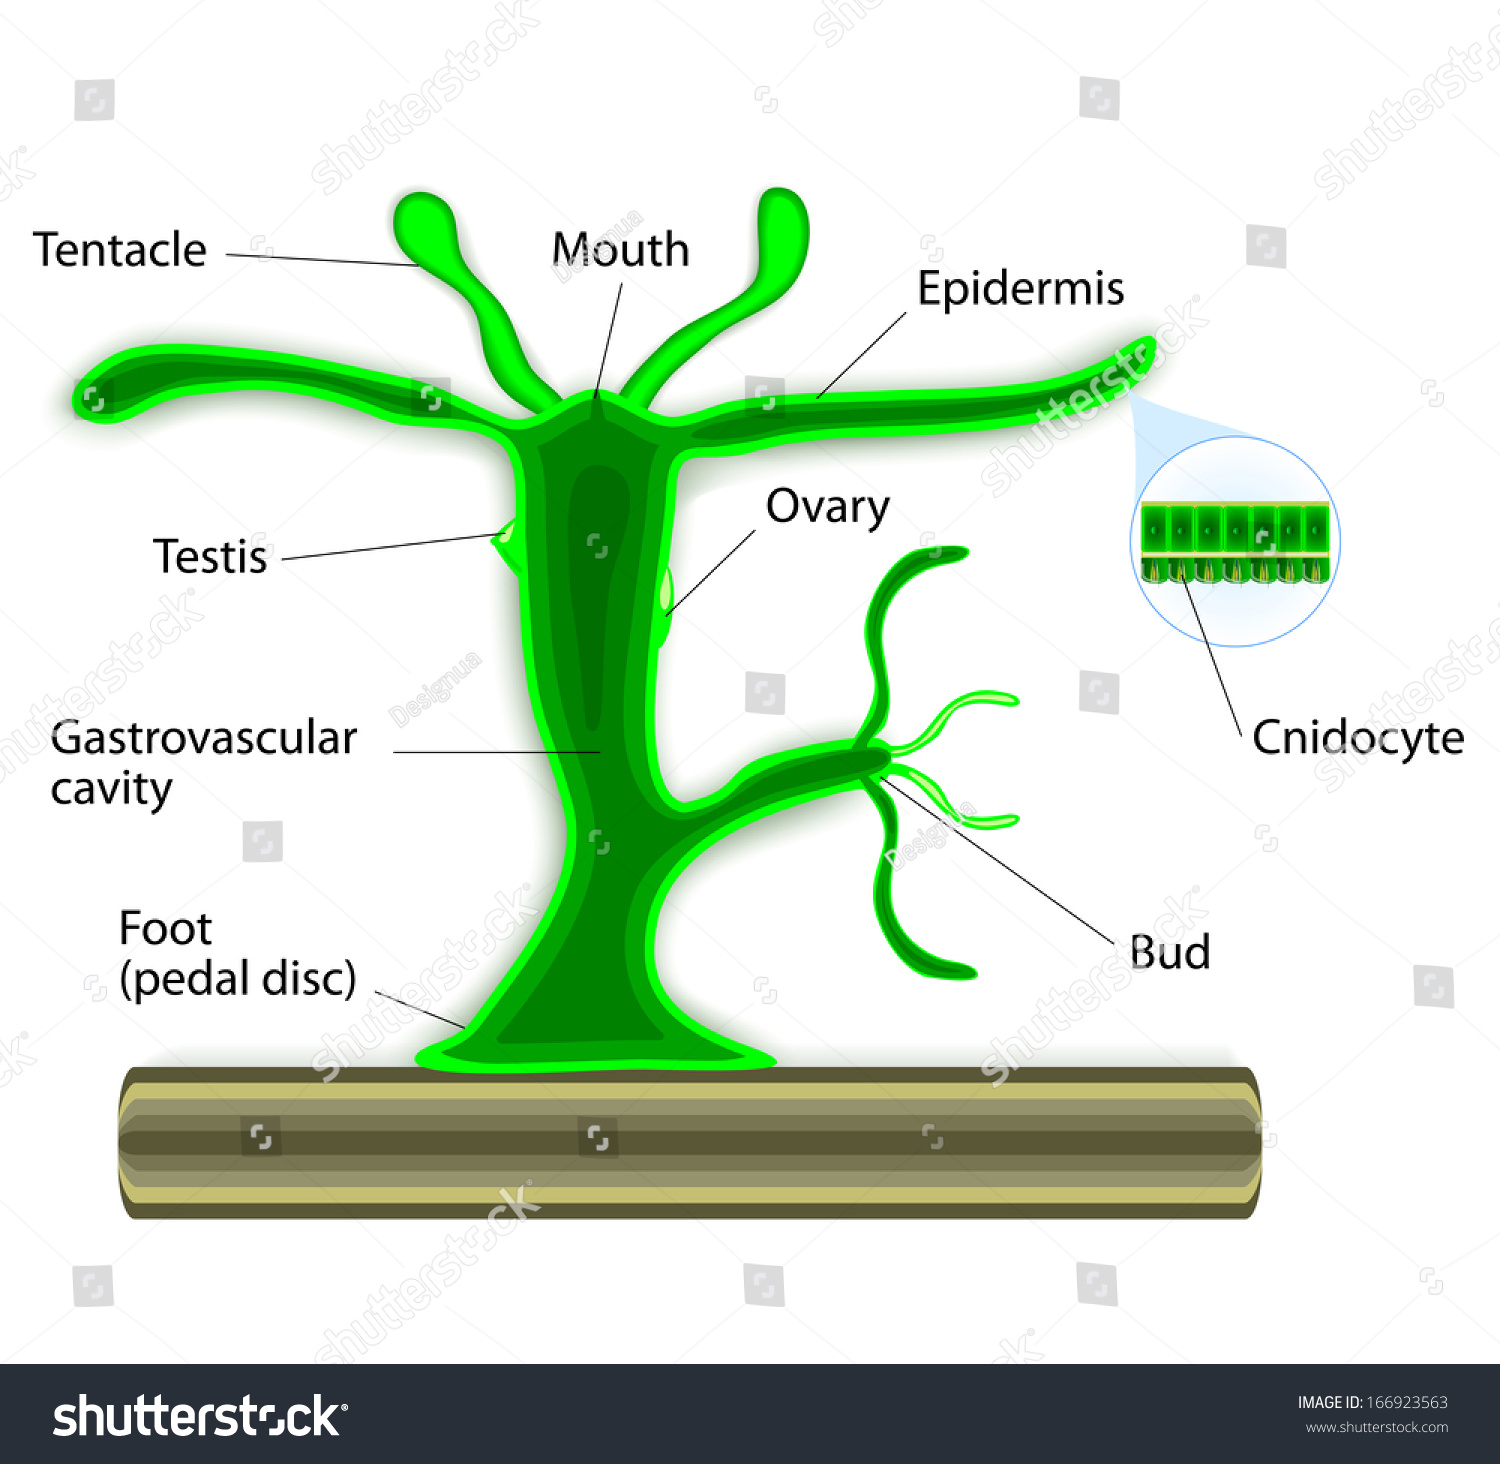 Hydra Life Cycle Diagram Trusted Wiring Diagrams Hydradiagram Scientific Research Agenda Plant Residential Electrical Symbols U2022 Of Echinoderms